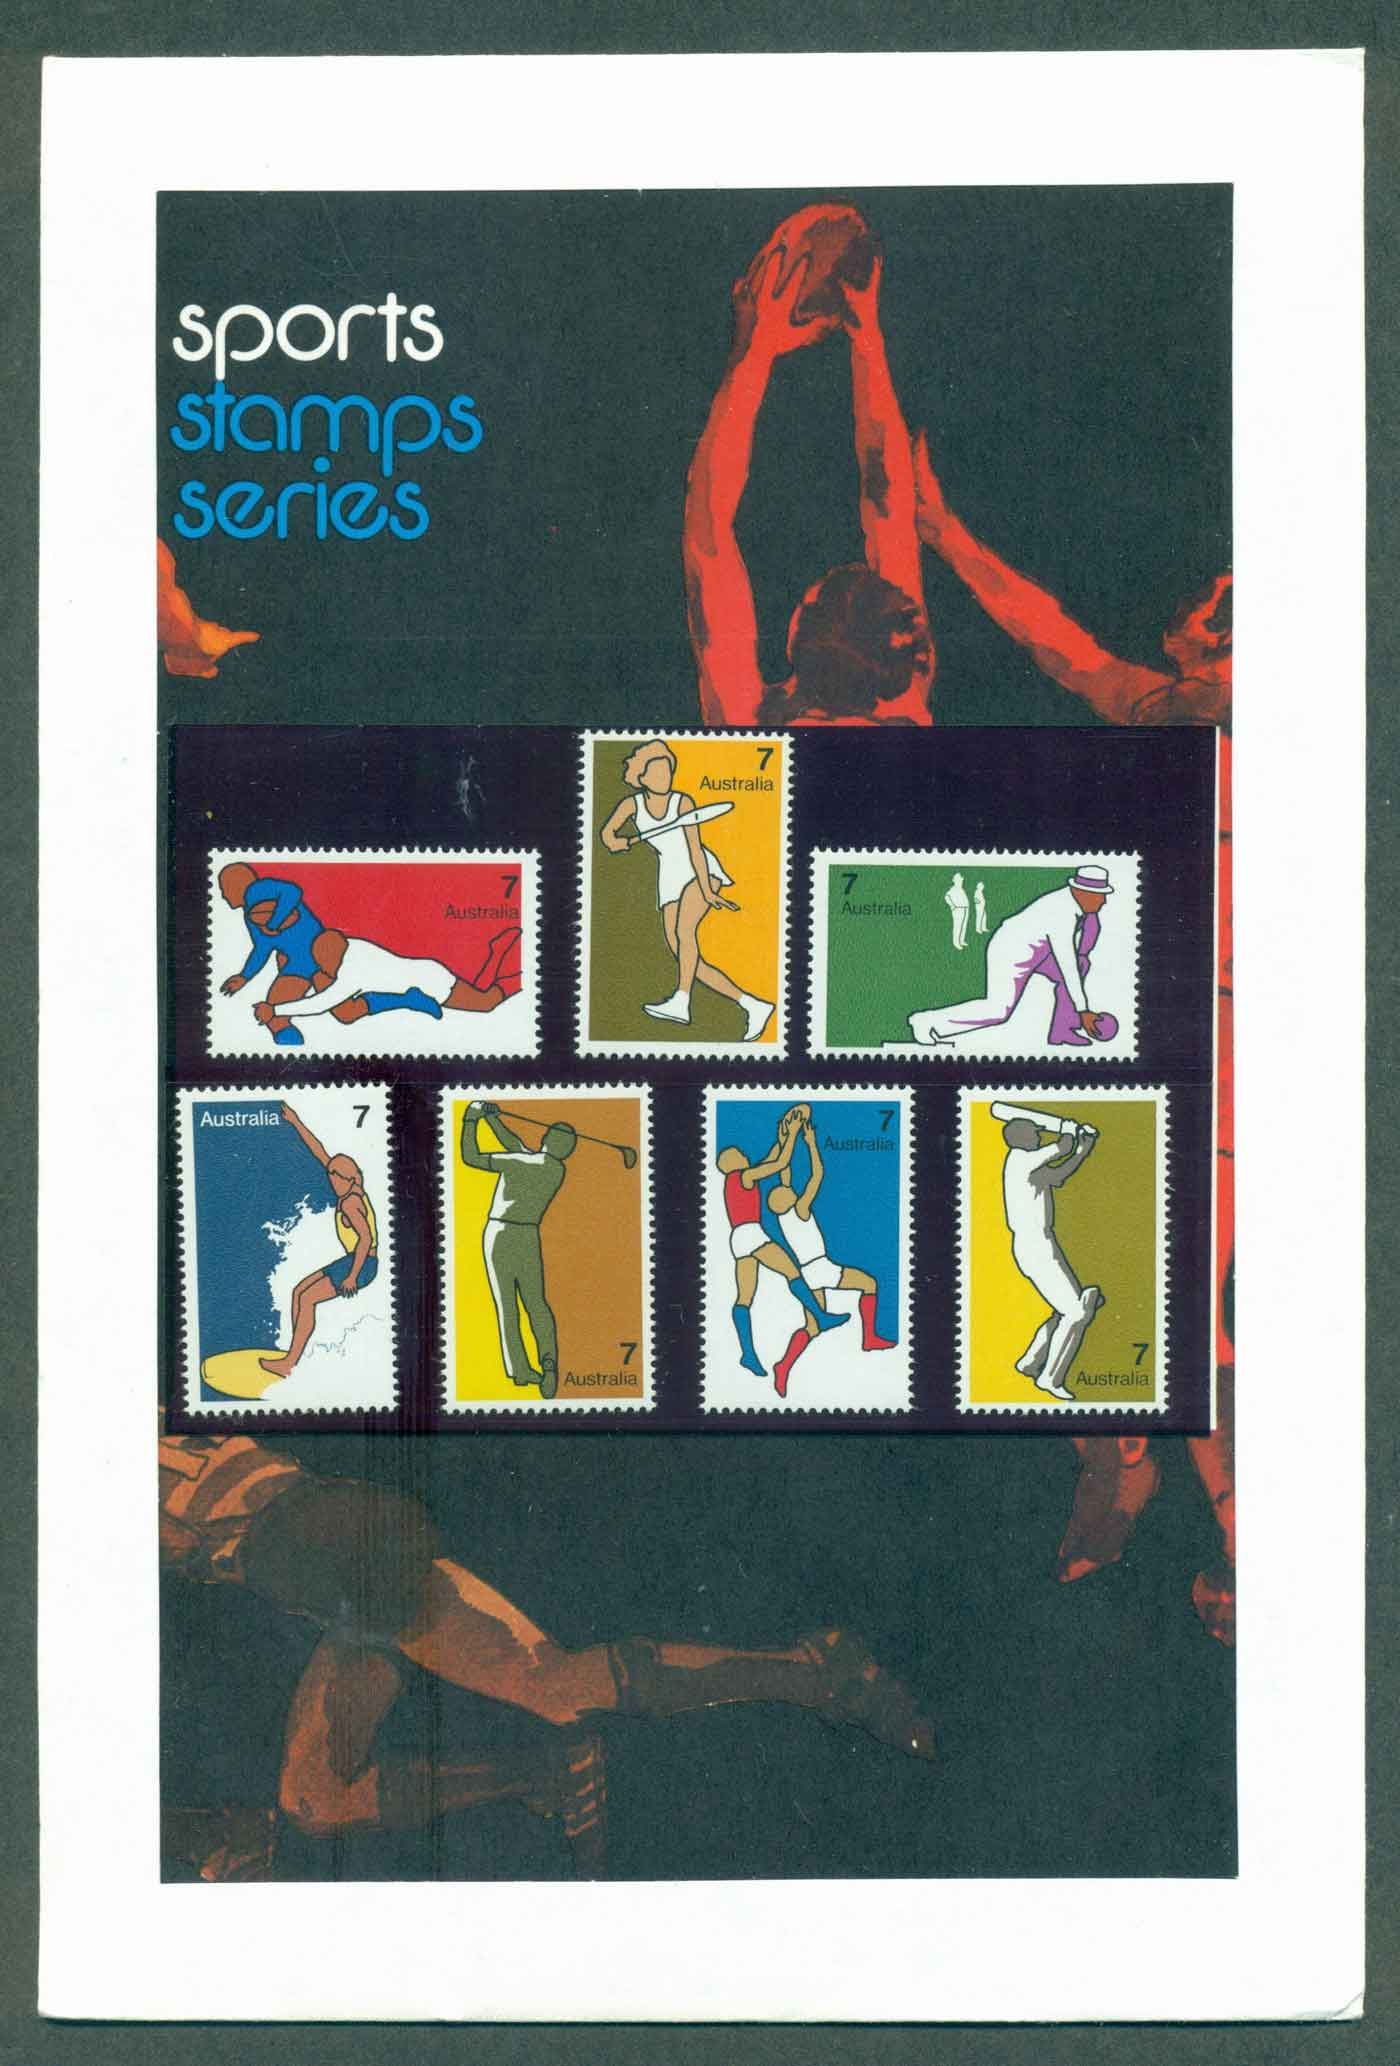 Australia 1974 Non Olympic Sports POP lot32176 - Click Image to Close